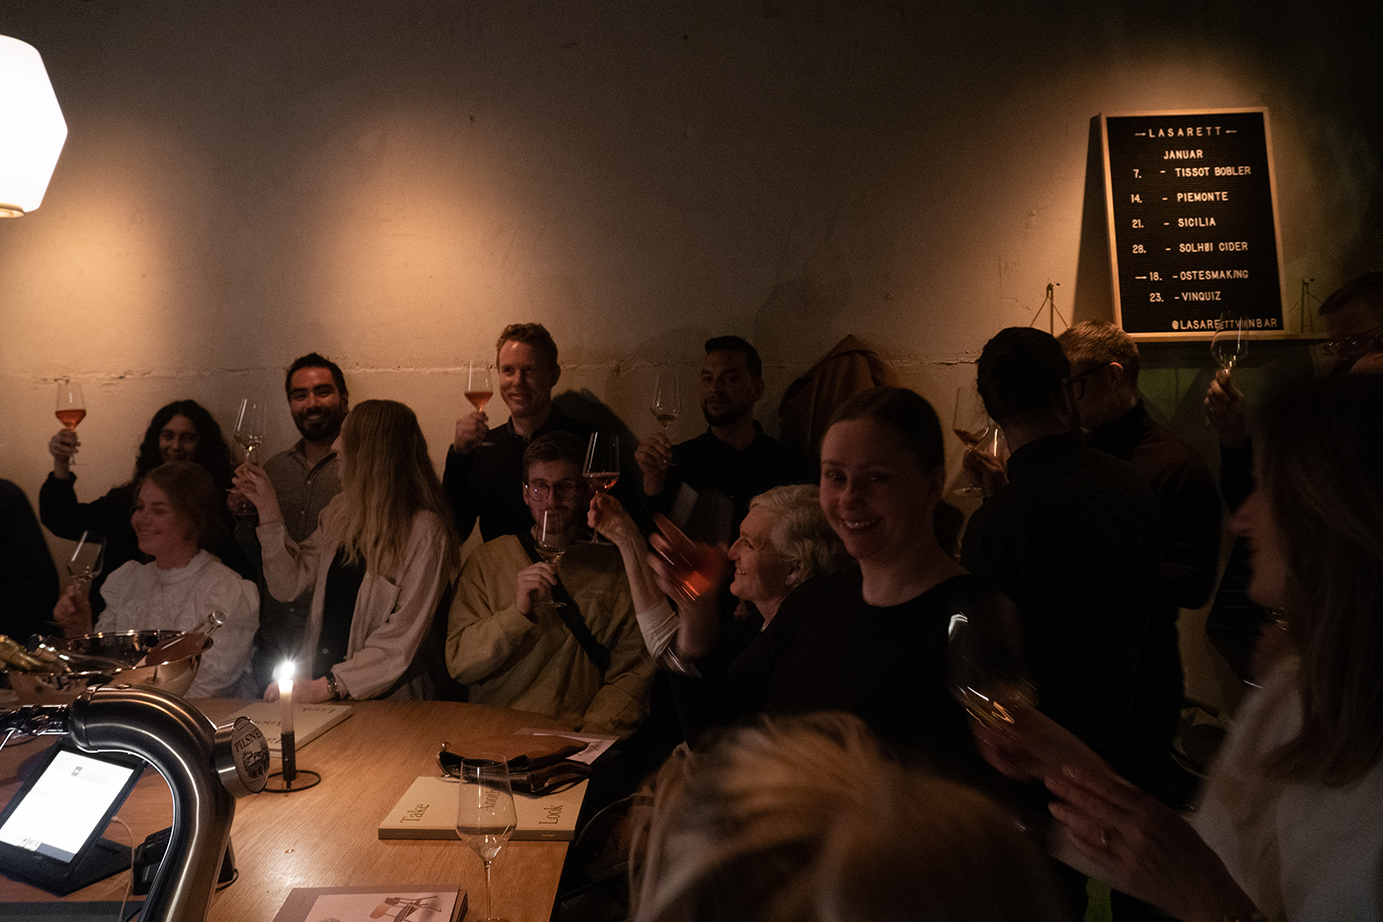 Take_Another_Look-Launch_party_at-Photo_Linn_Kristine_Byre_Johansen-472-Low-res